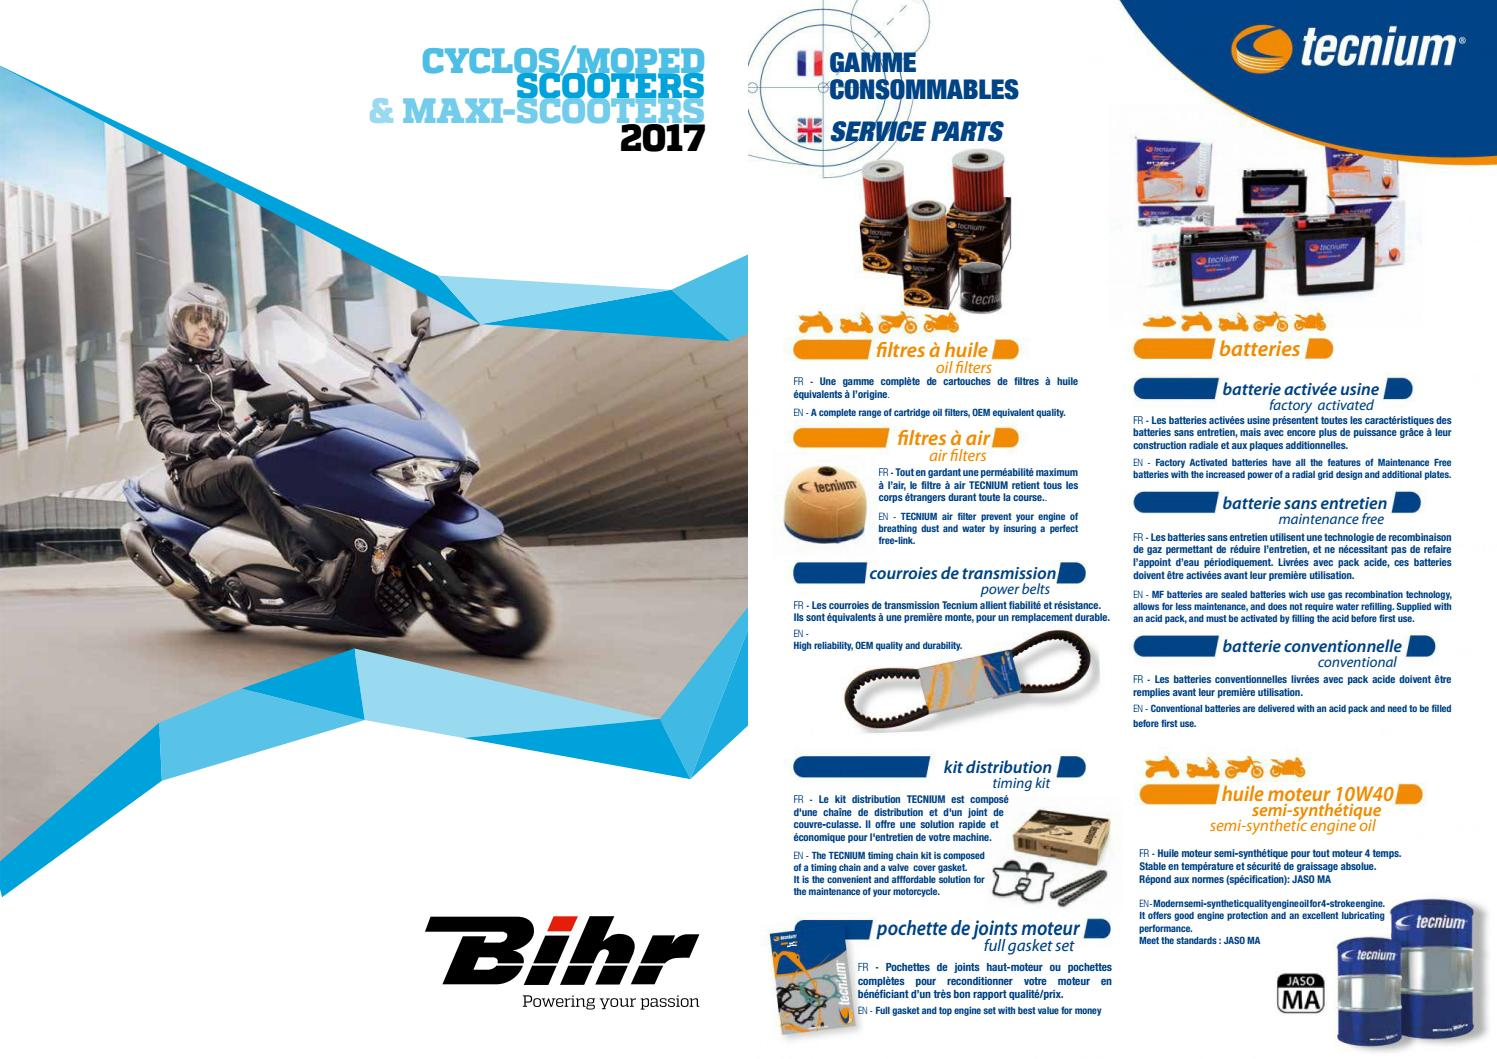 CACHE CYLINDRE//CULASSE SCOOTER IMPORT PARTS BIKE TREKKER//SPEEDFIGHT//VIVACITY//BUXY IMPORT PARTS BIKE